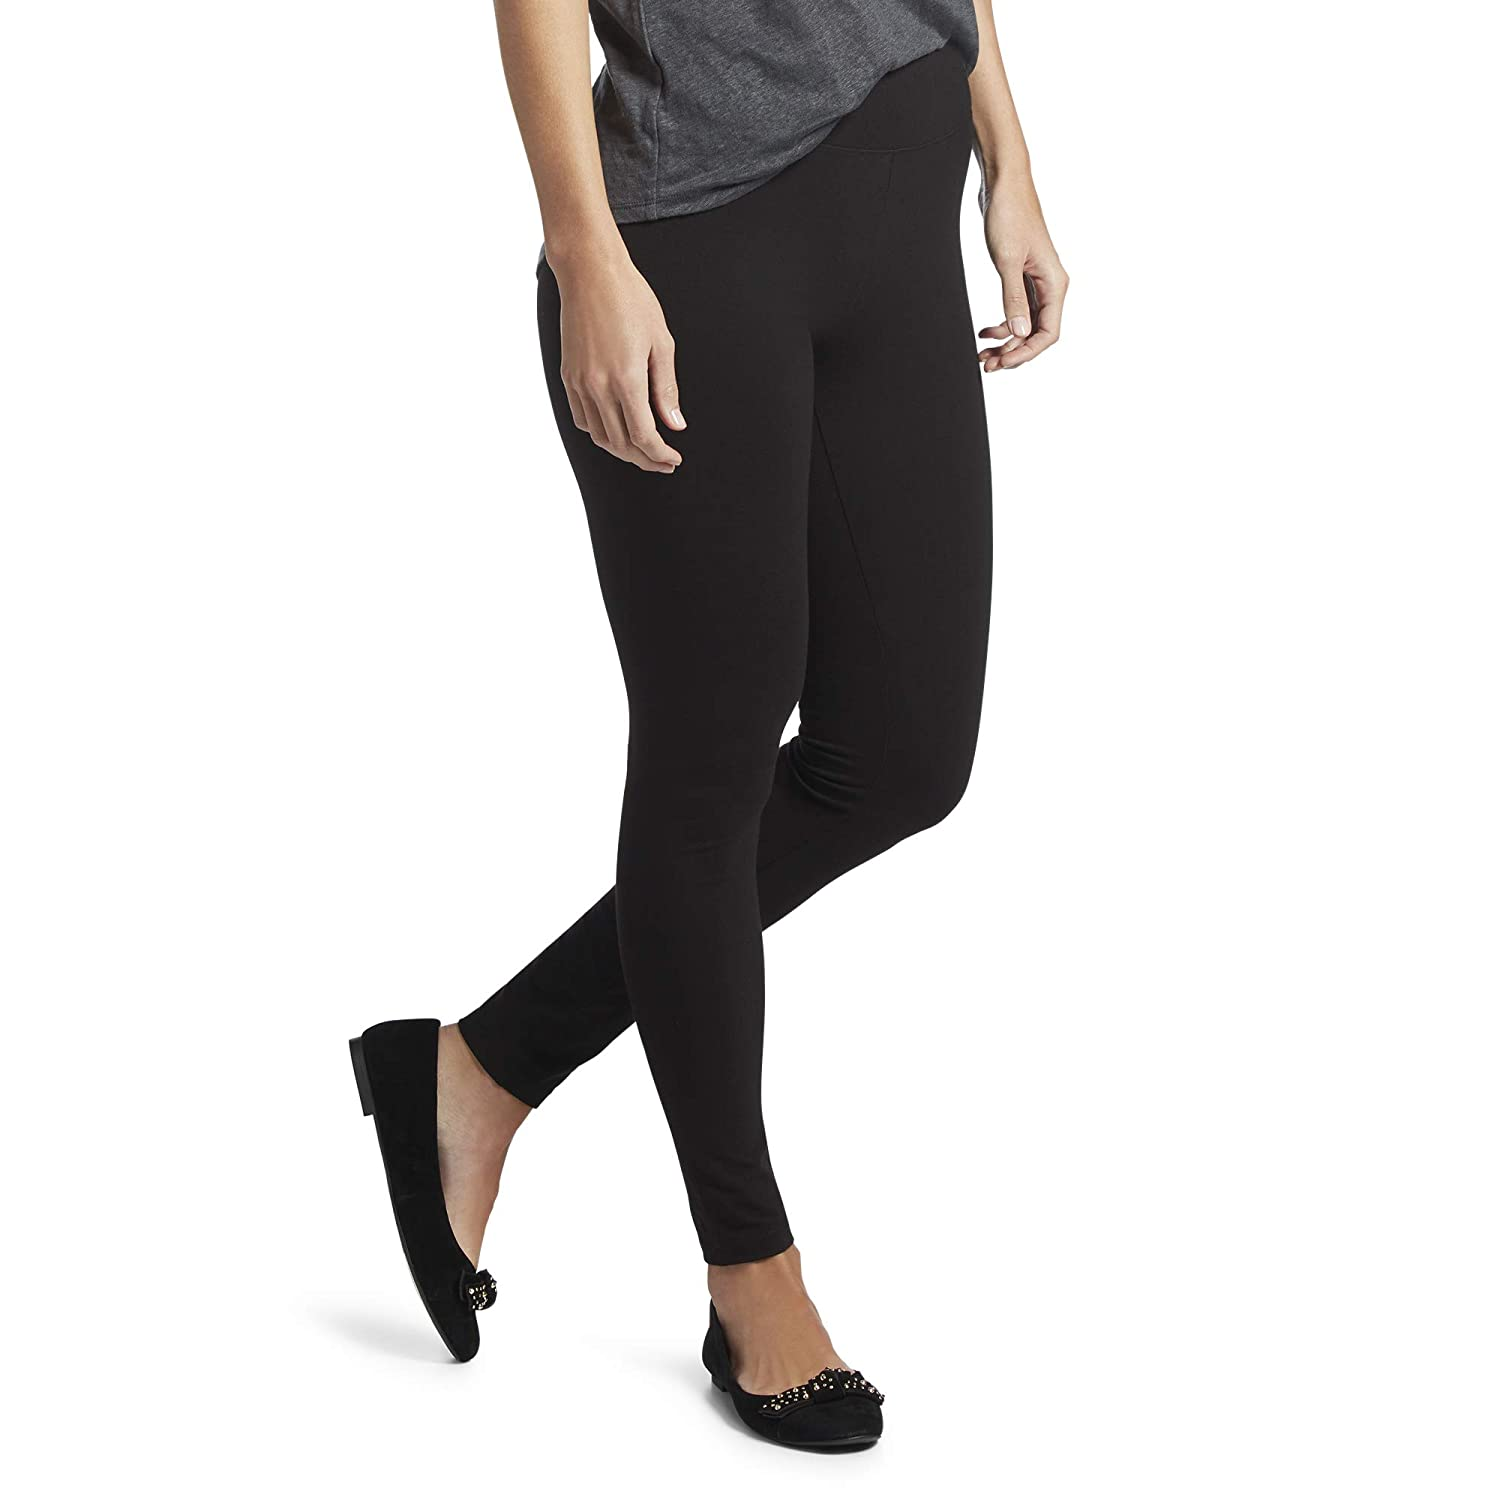 f8baae723935fb HUE Women's Cotton Ultra Legging with Wide Waistband at Amazon Women's  Clothing store: